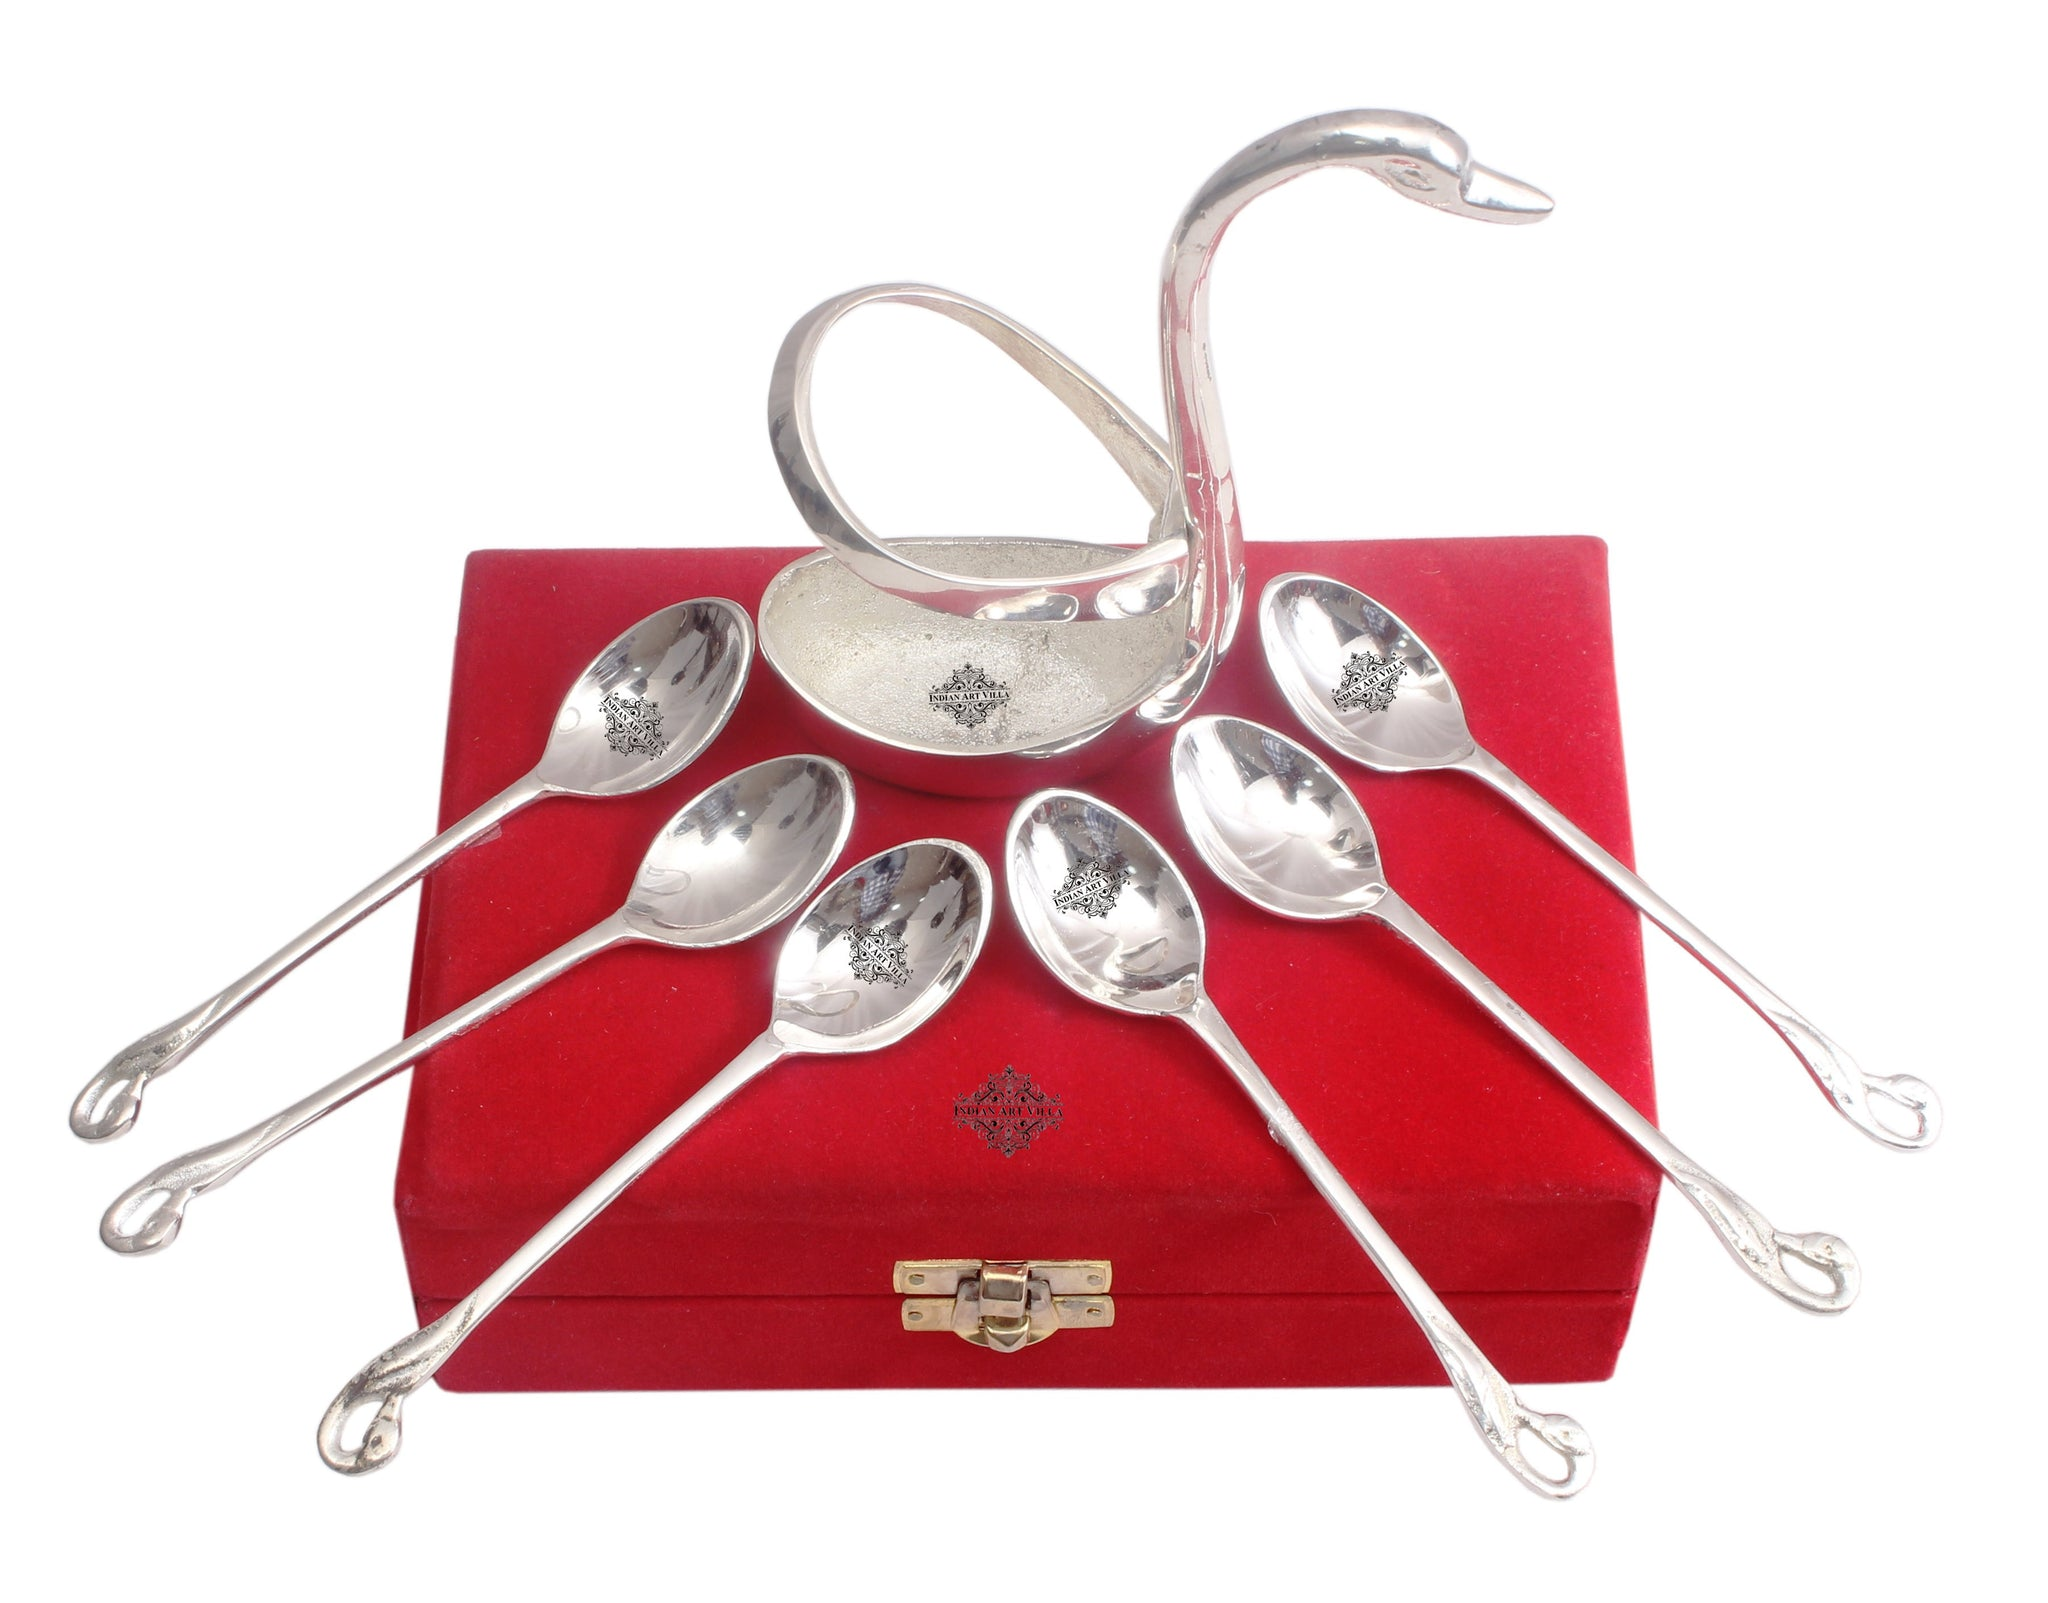 Silver Plated Duck Design Cutlery Stand with 6 Spoons